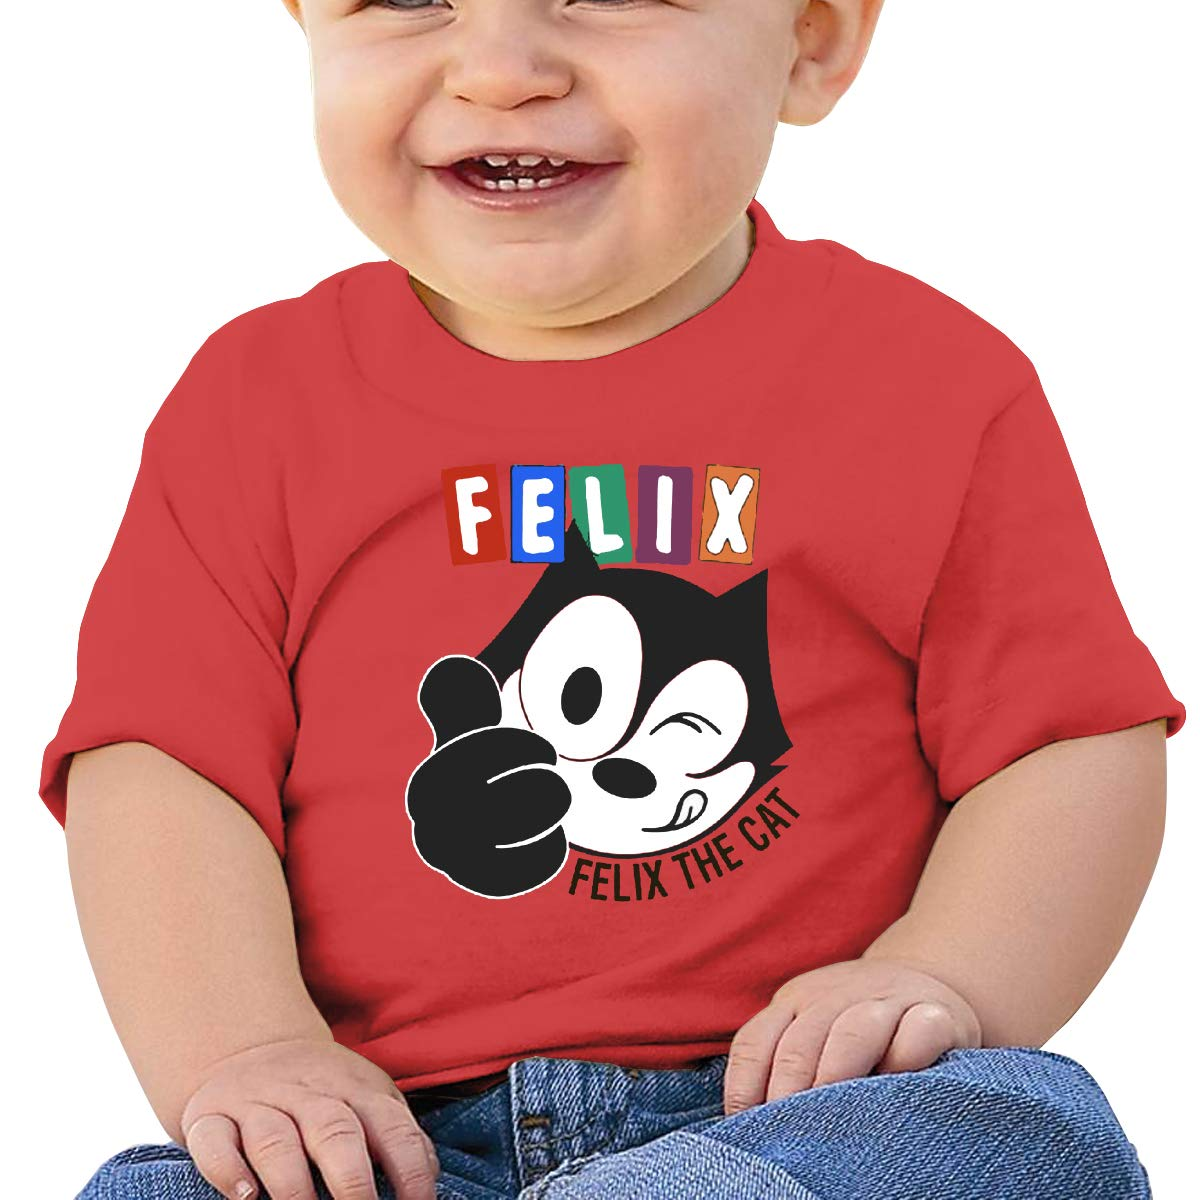 Boys Girls Shirts Smart Felix The Pussy Cat Baby Tees Unique Red Tank Tops for Boys